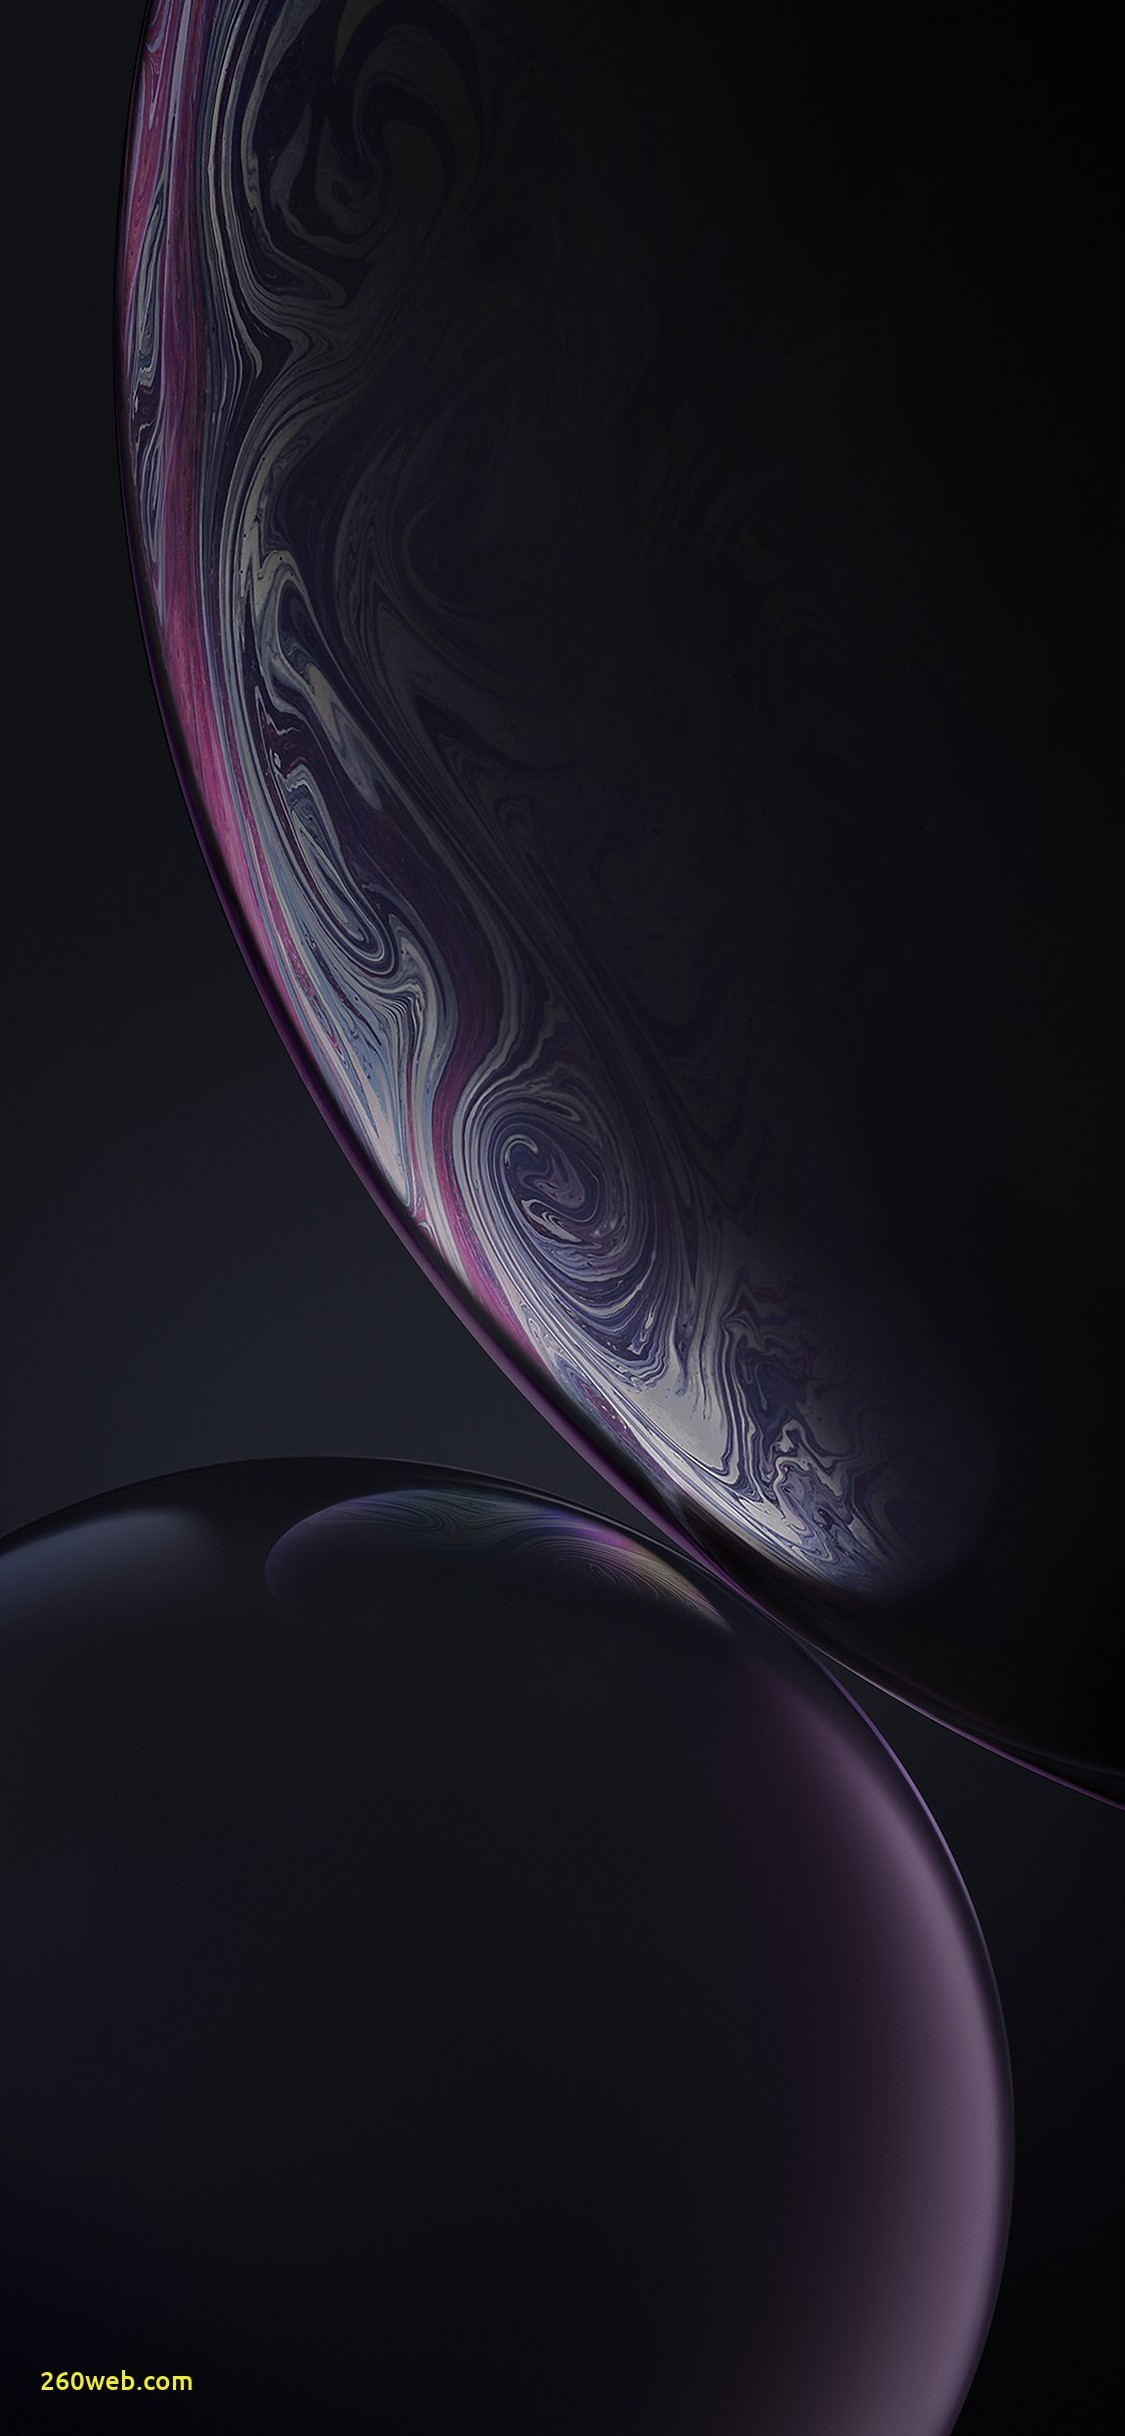 Black And Purple Iphone Wallpaper 81 Images